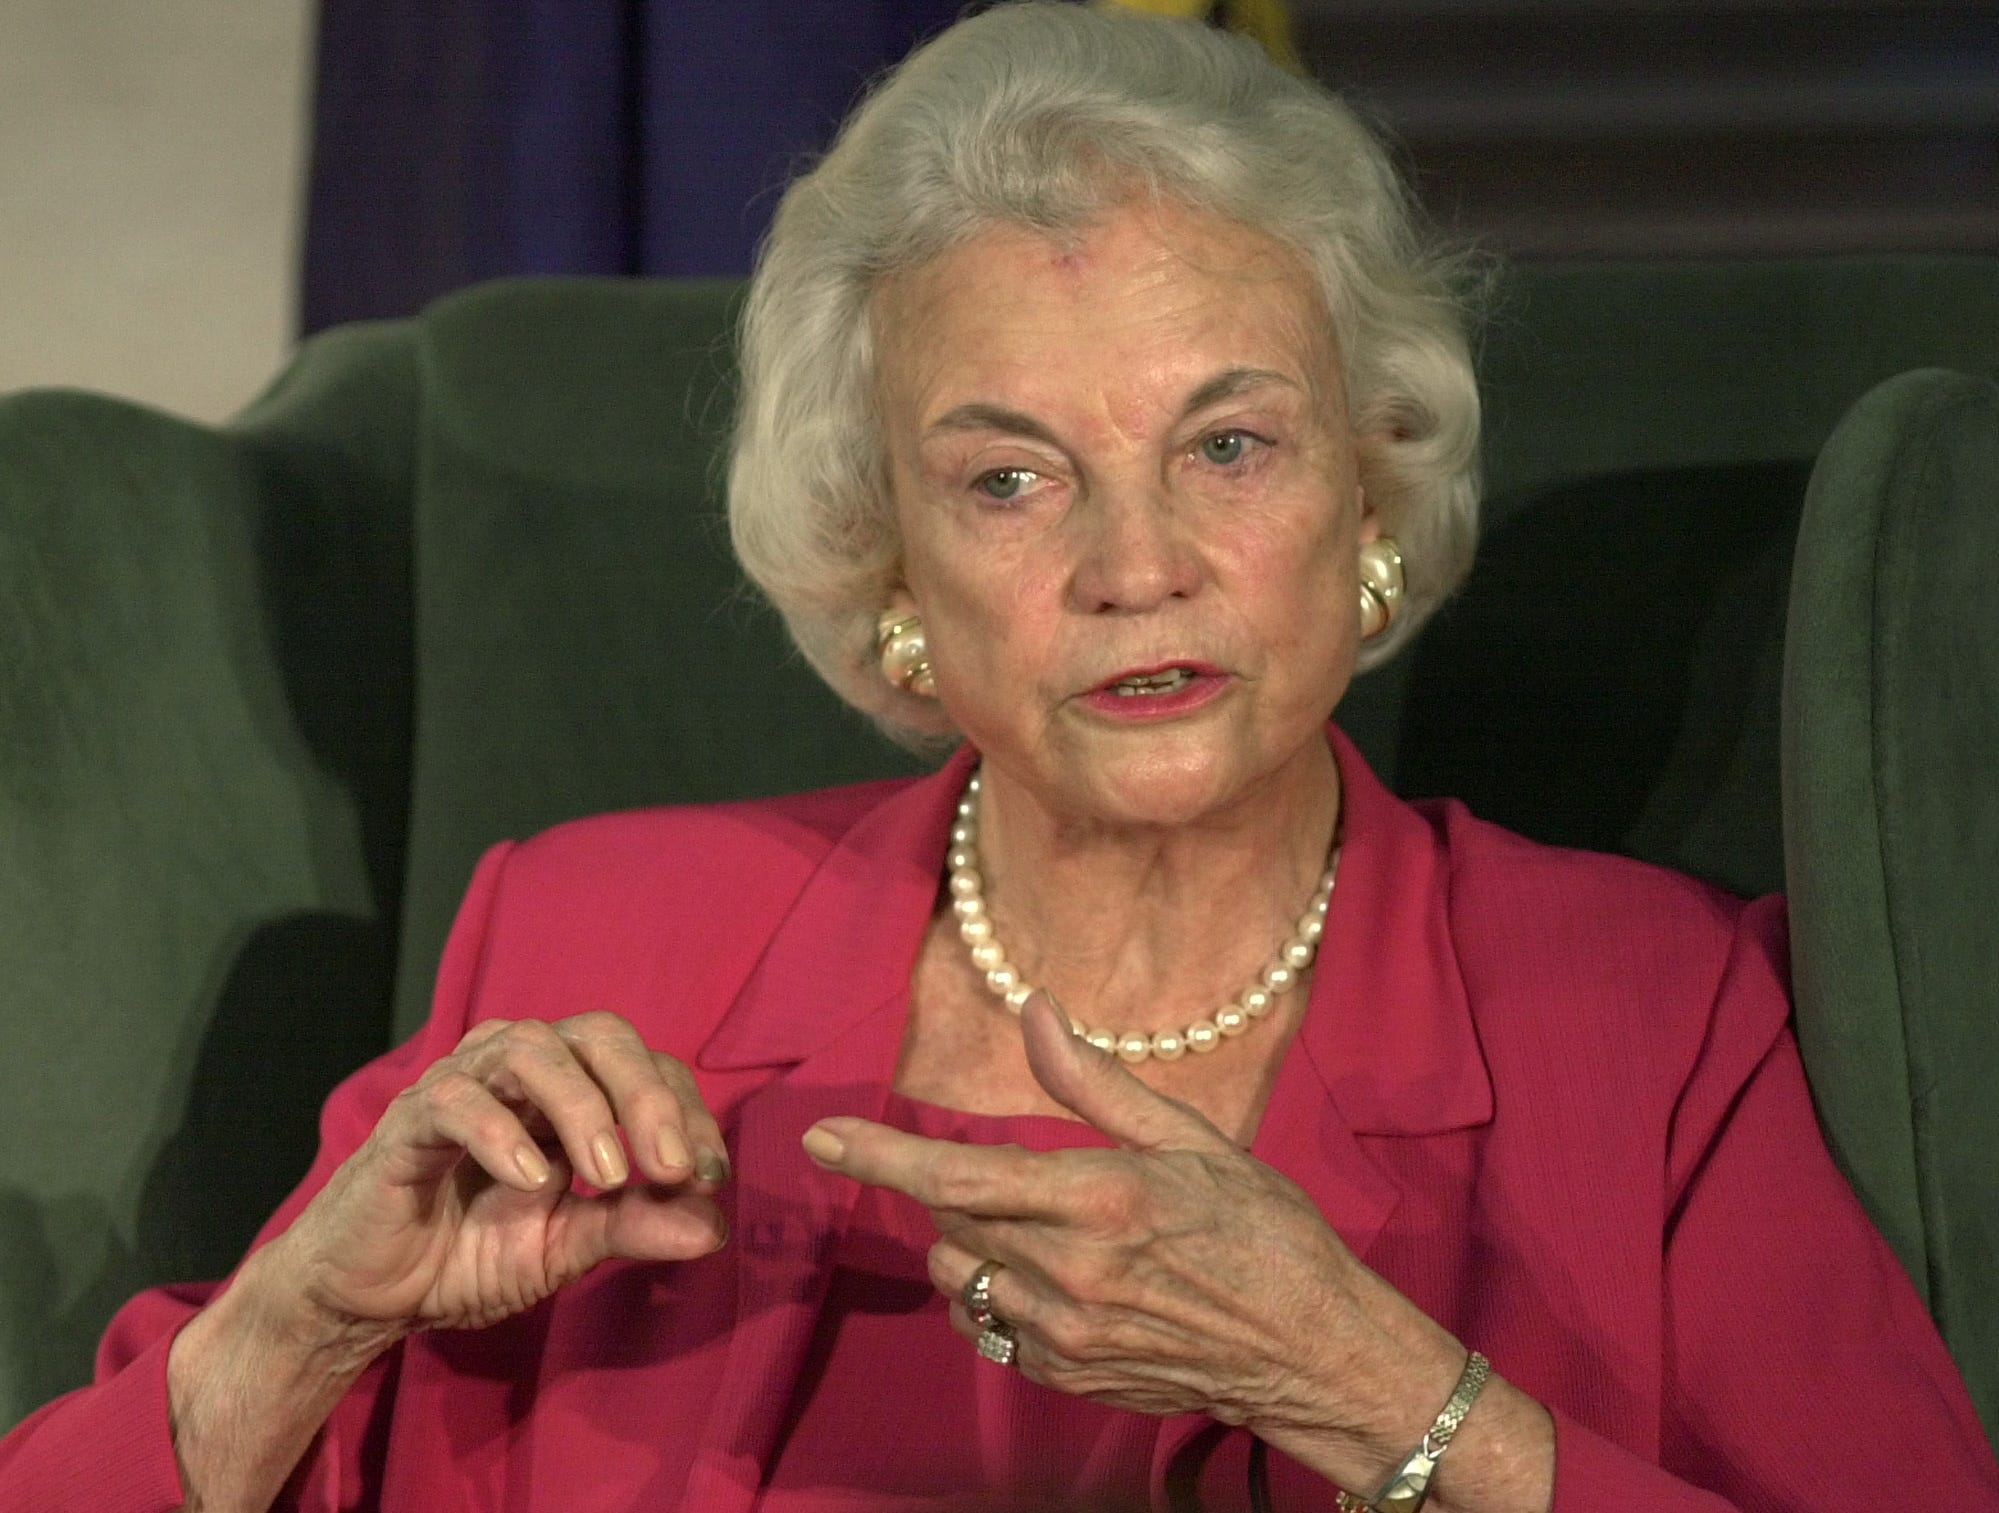 Supreme Court Justice Sandra Day O'Connor talks with students during a forum at the University of Louisville Brandeis School of Law Wednesday, May 14, 2003, in Louisville, Ky.